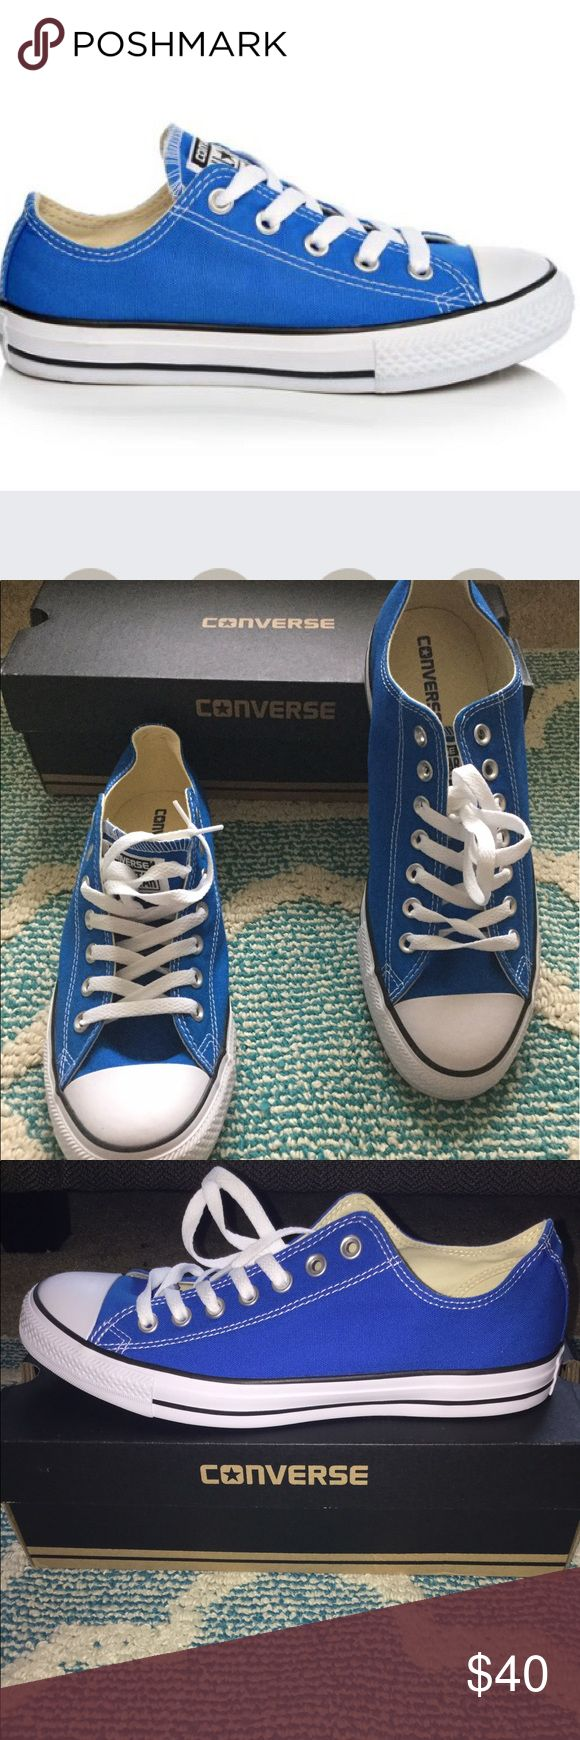 🌟NEW🌟Converse OX Soar Sneaker Brand new in box! Never worn! Beautiful blue color great for the summer! Dress up with a polo or dress down with jeans and a Tee! Perfect for Father's Day! 👕👖👟👍 Converse Shoes Sneakers